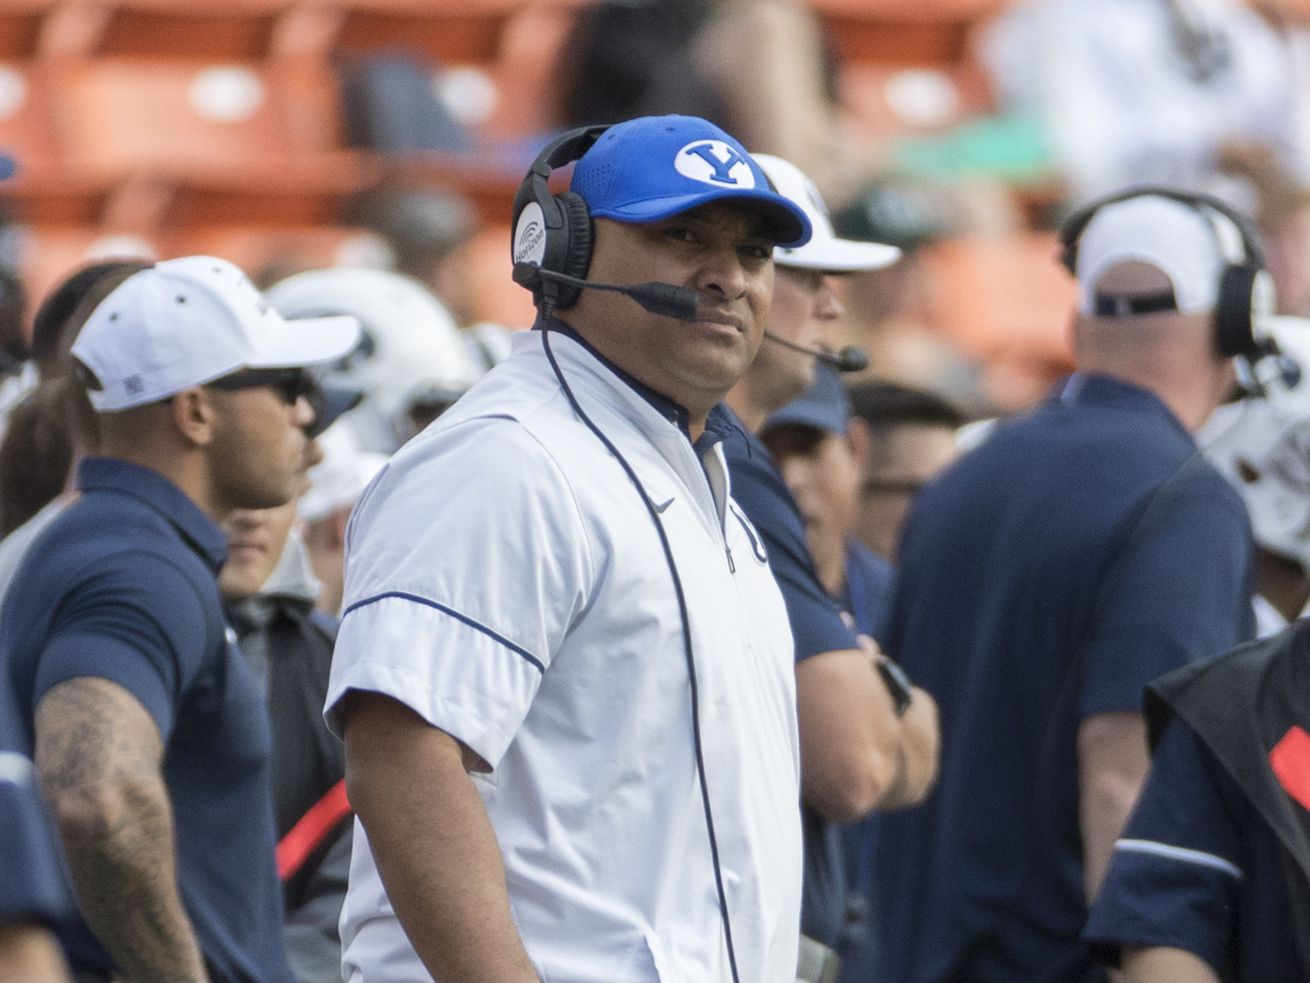 20171126 BYU head coach Kalani Sitake looks up at the scoreboard in the first quarter of game against Hawaii, Saturday, Nov. 25, 2017, in Honolulu.